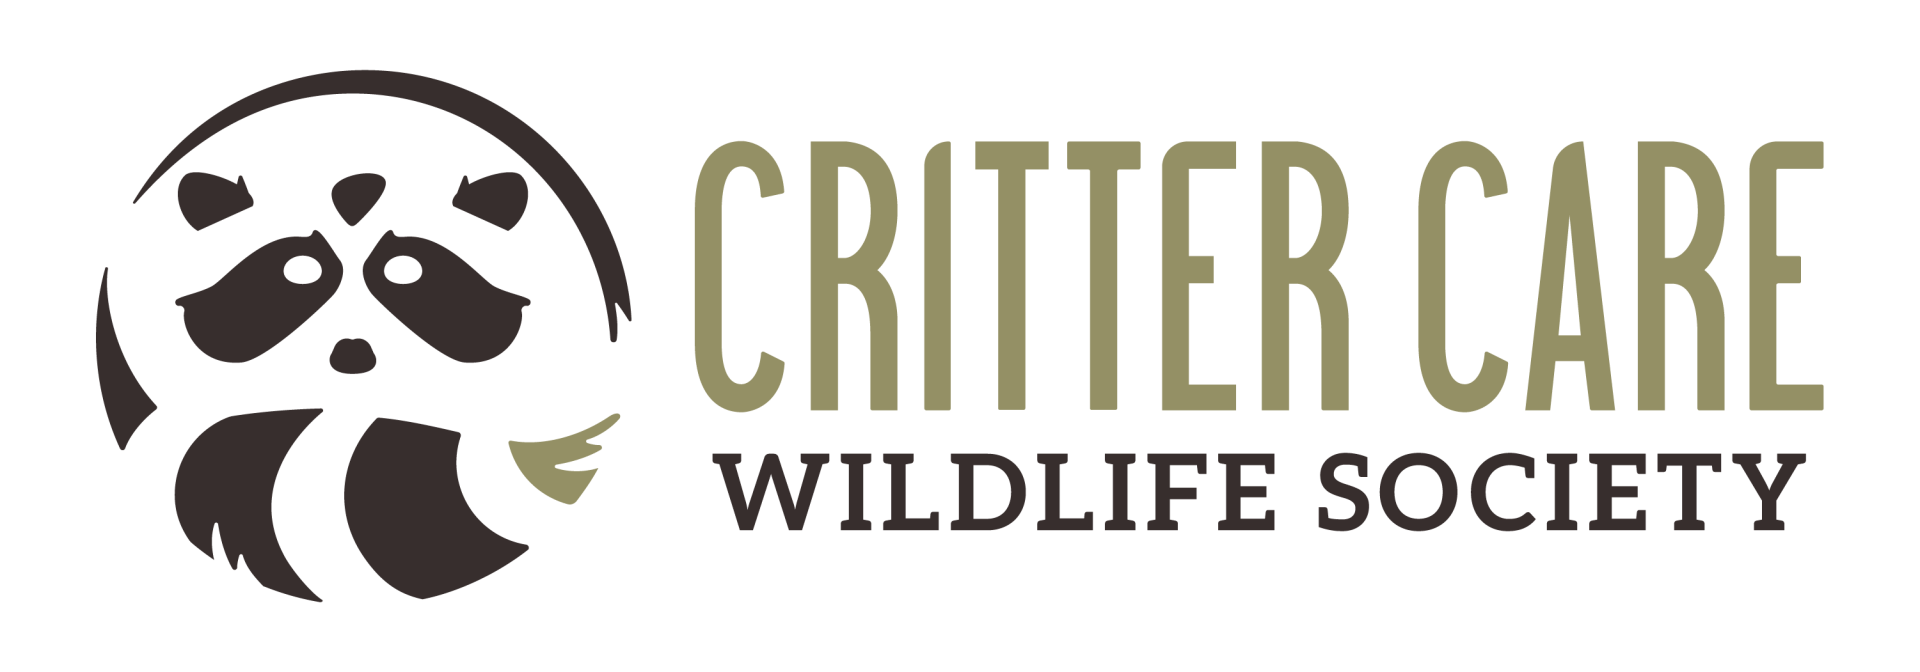 Critter Care Wildlife